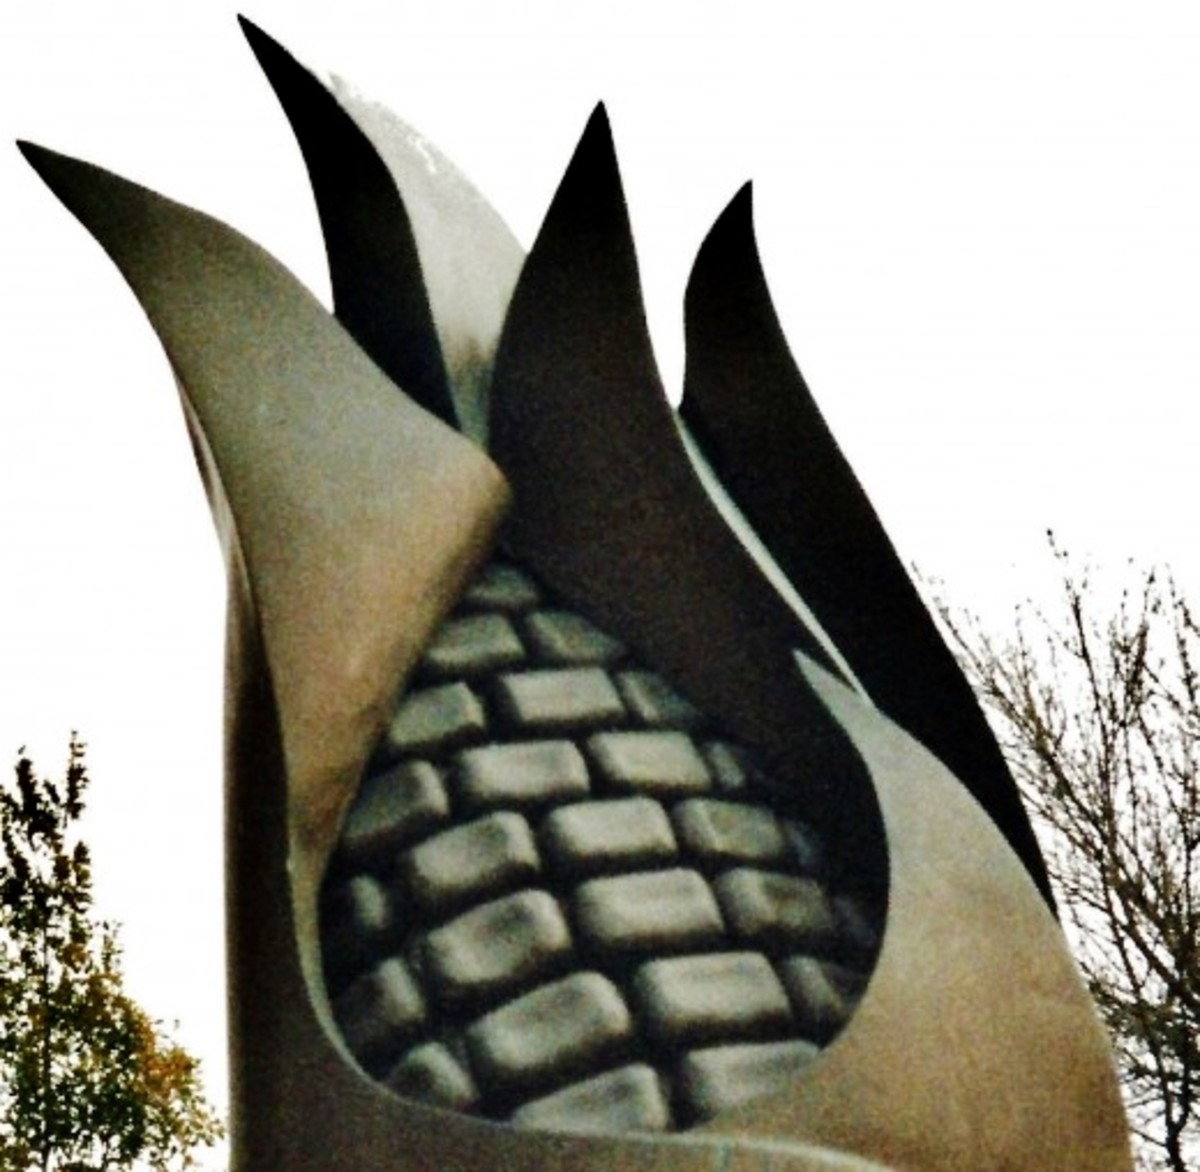 Closeup photo of the corn topped sculpture by Iowa artist Tom Stancliffe.